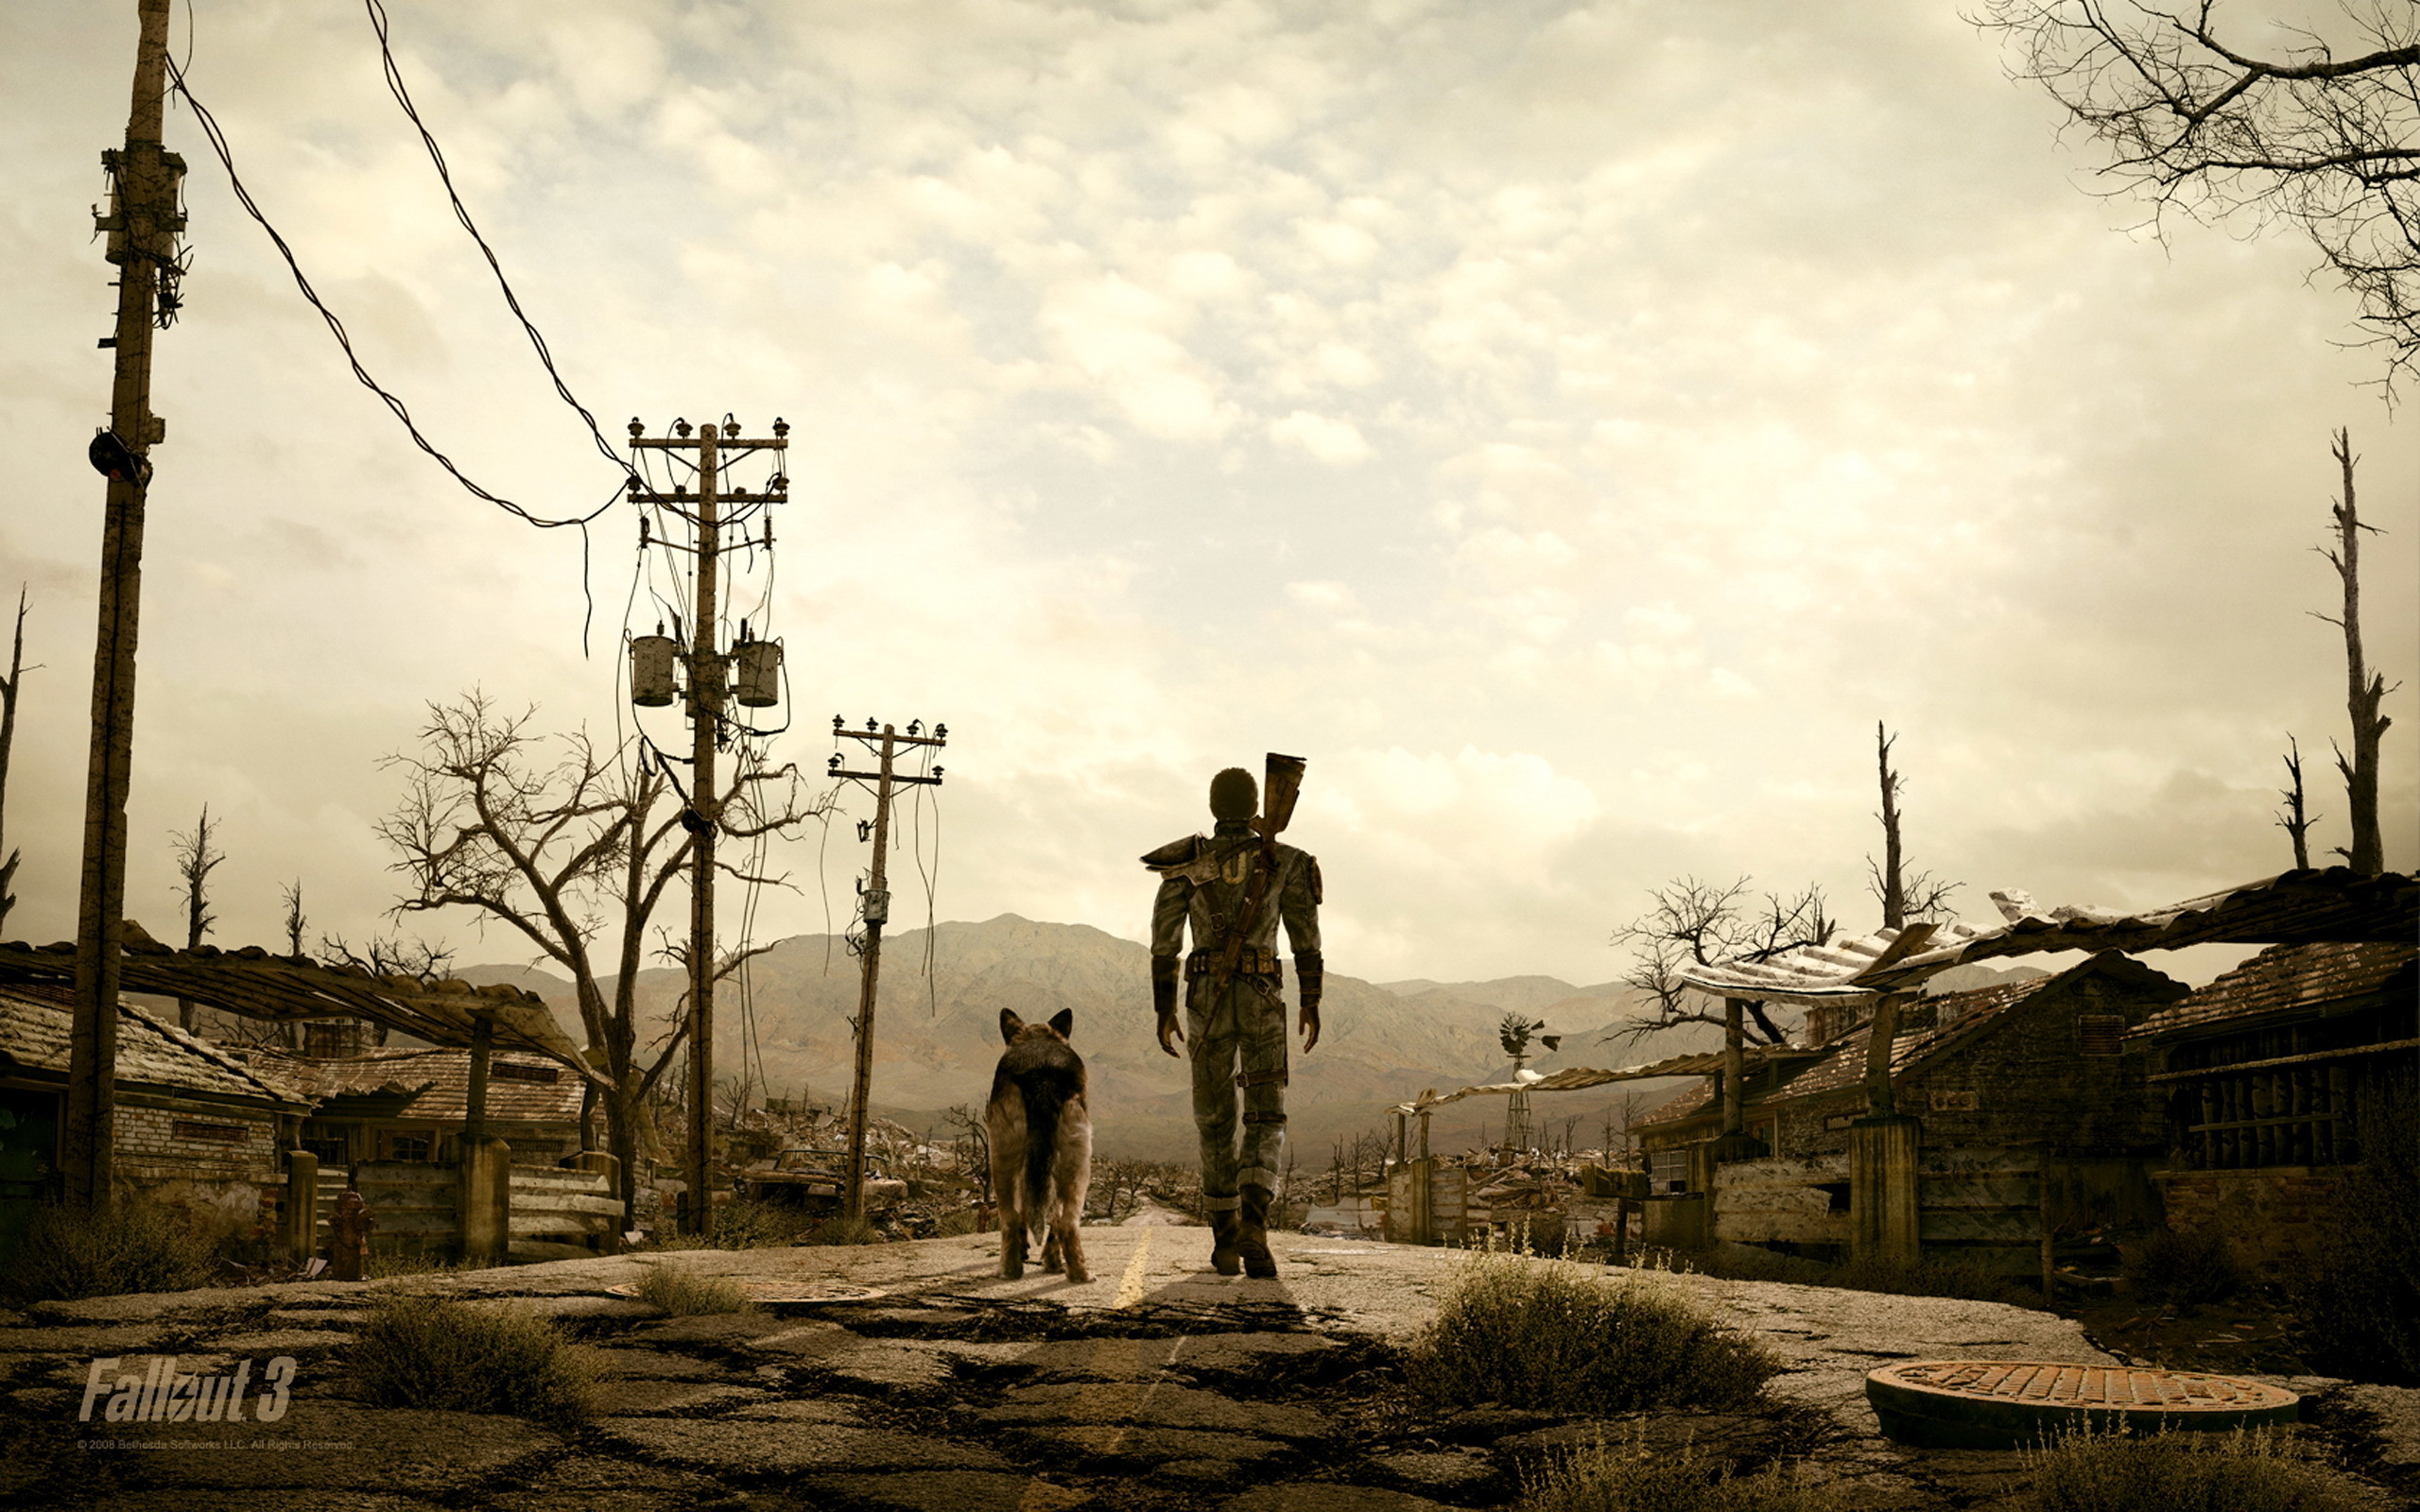 Fallout Wallpapers 1080p …